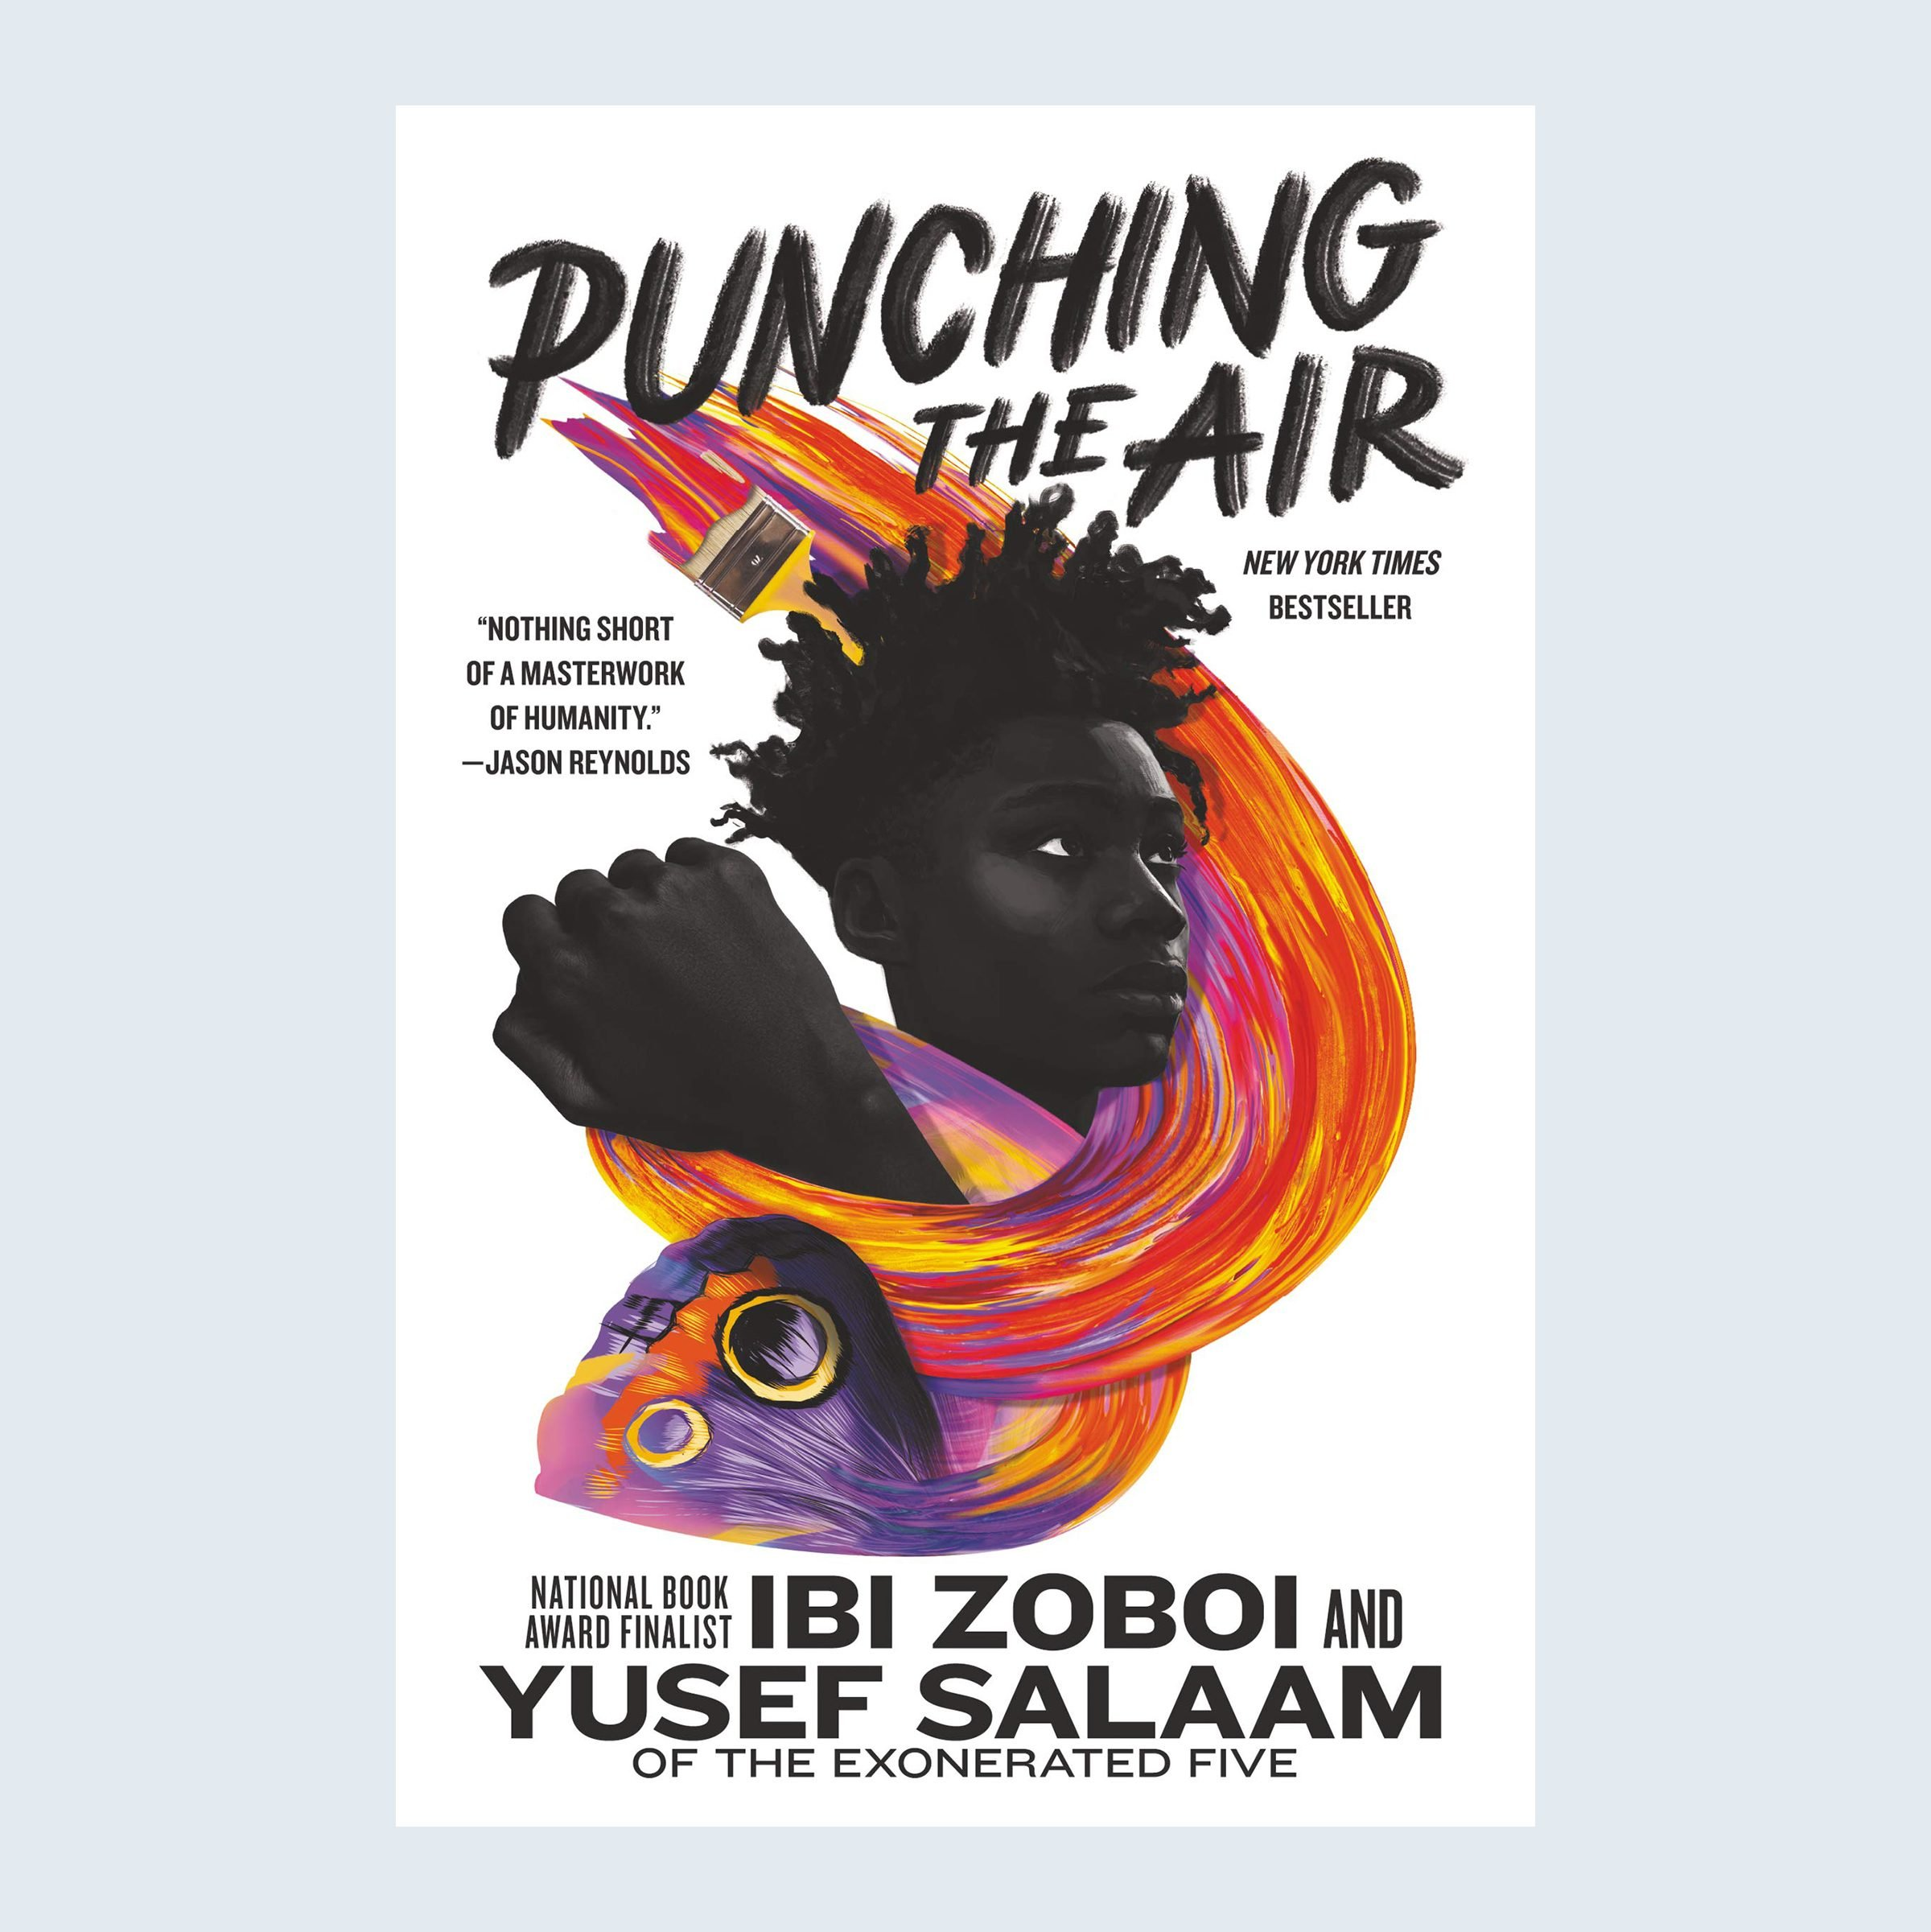 Punching the Air by Ibi Zoboi and Yusef Salaam